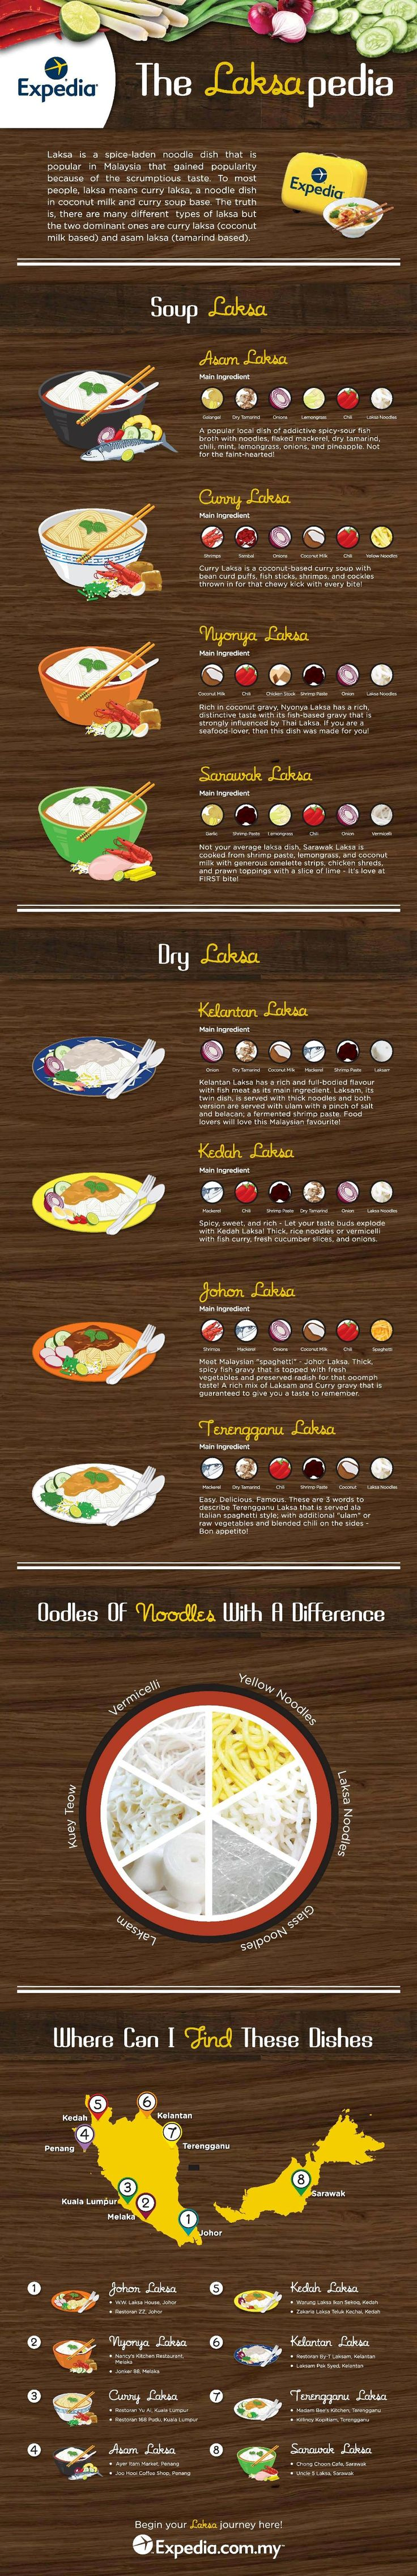 where-to-get-laksa-in-Malaysia.jpg (1000×6182)